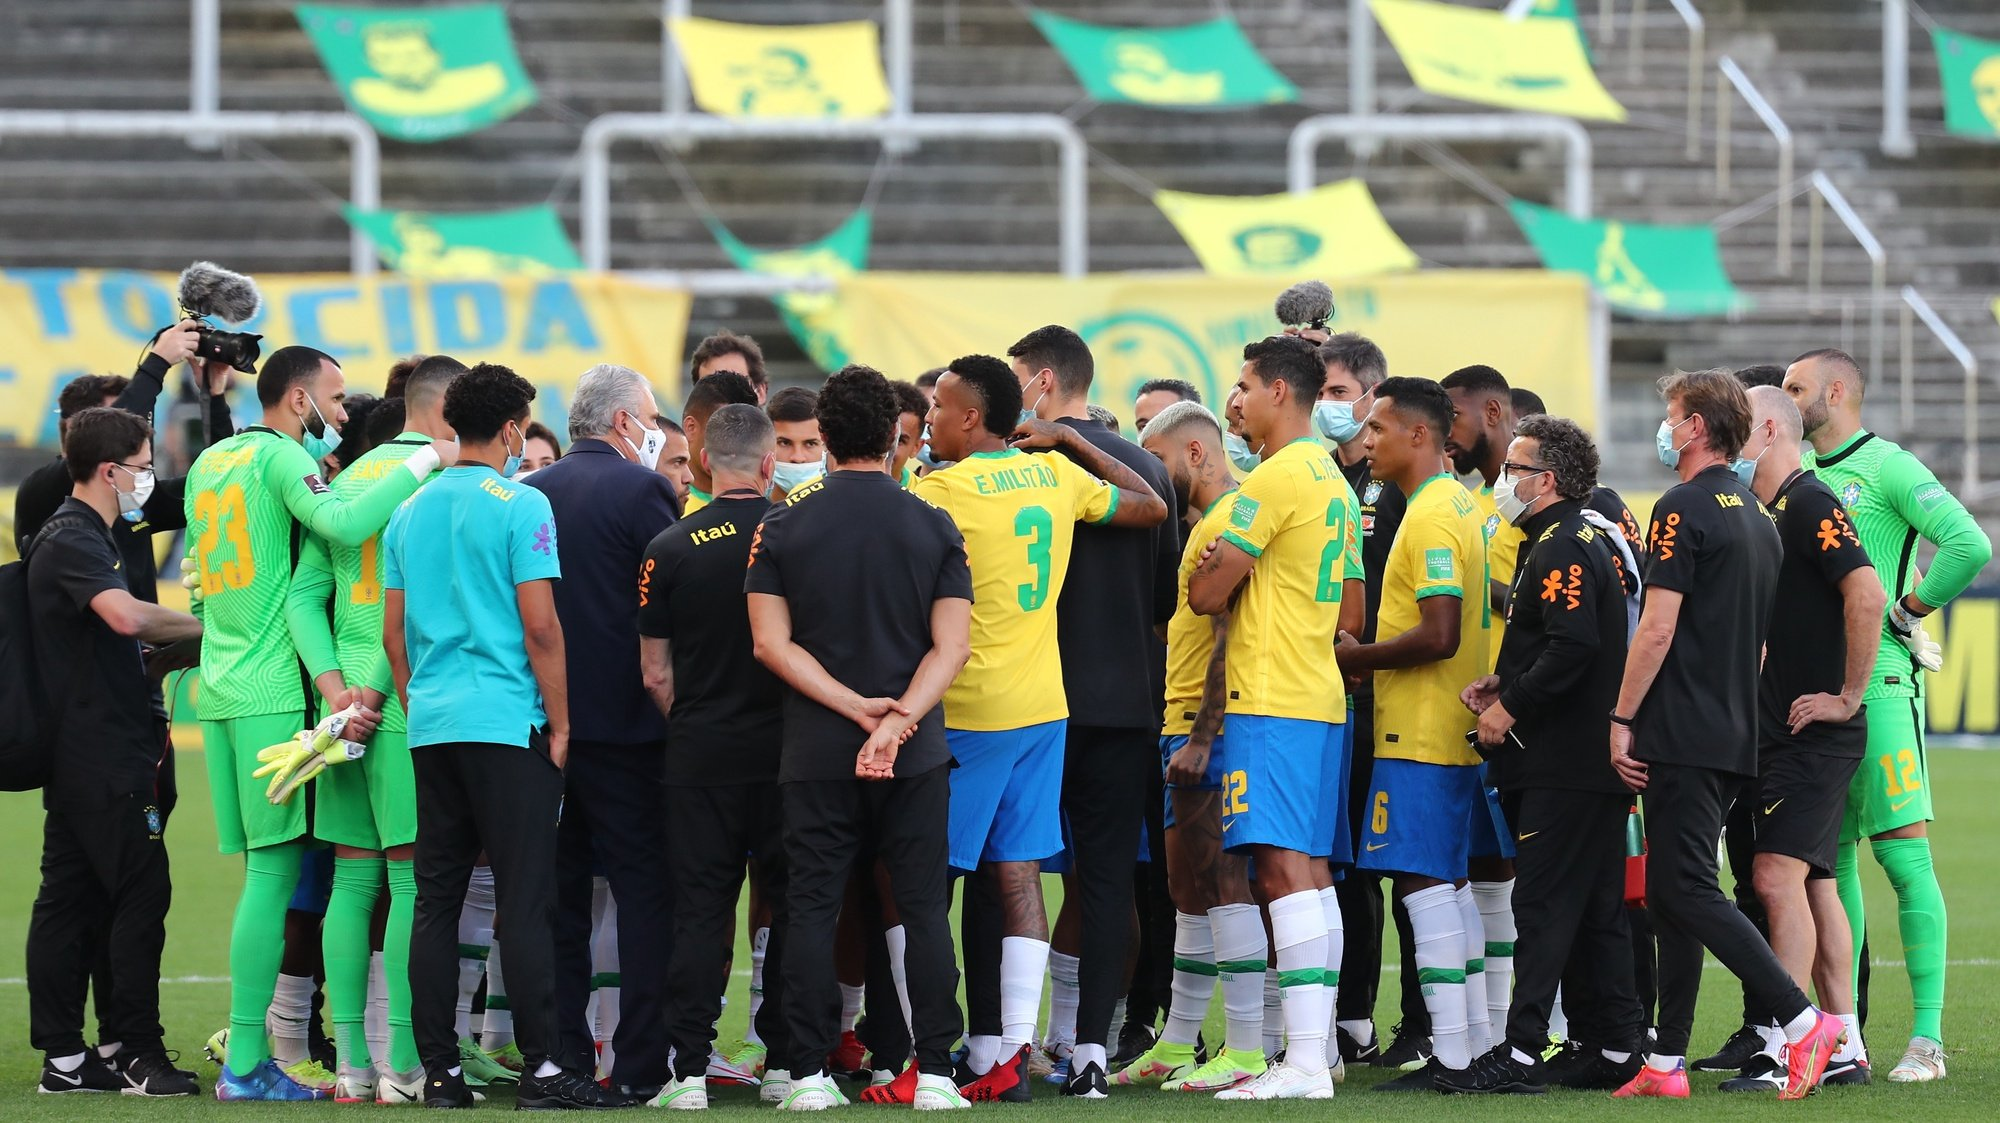 epa09450375 Brazil's coach Tite (5-L) speaks with his players after Brazilian health officials stopped a match against Argentina for the South American soccer qualifiers to the Qatar 2022 World Cup, at the Arena Sao Paulo Stadium, in Sao Paulo, Brazil, 05 September 2021. The National Health Surveillance Agency (Anvisa, regulator) of Brazil interrupted the match between Brazil and Argentina due to an alleged irregularity in the immigration of four visiting players, in a controversial decision that led to the withdrawal of the teams and the referees.  EPA/Sebastiao Moreira